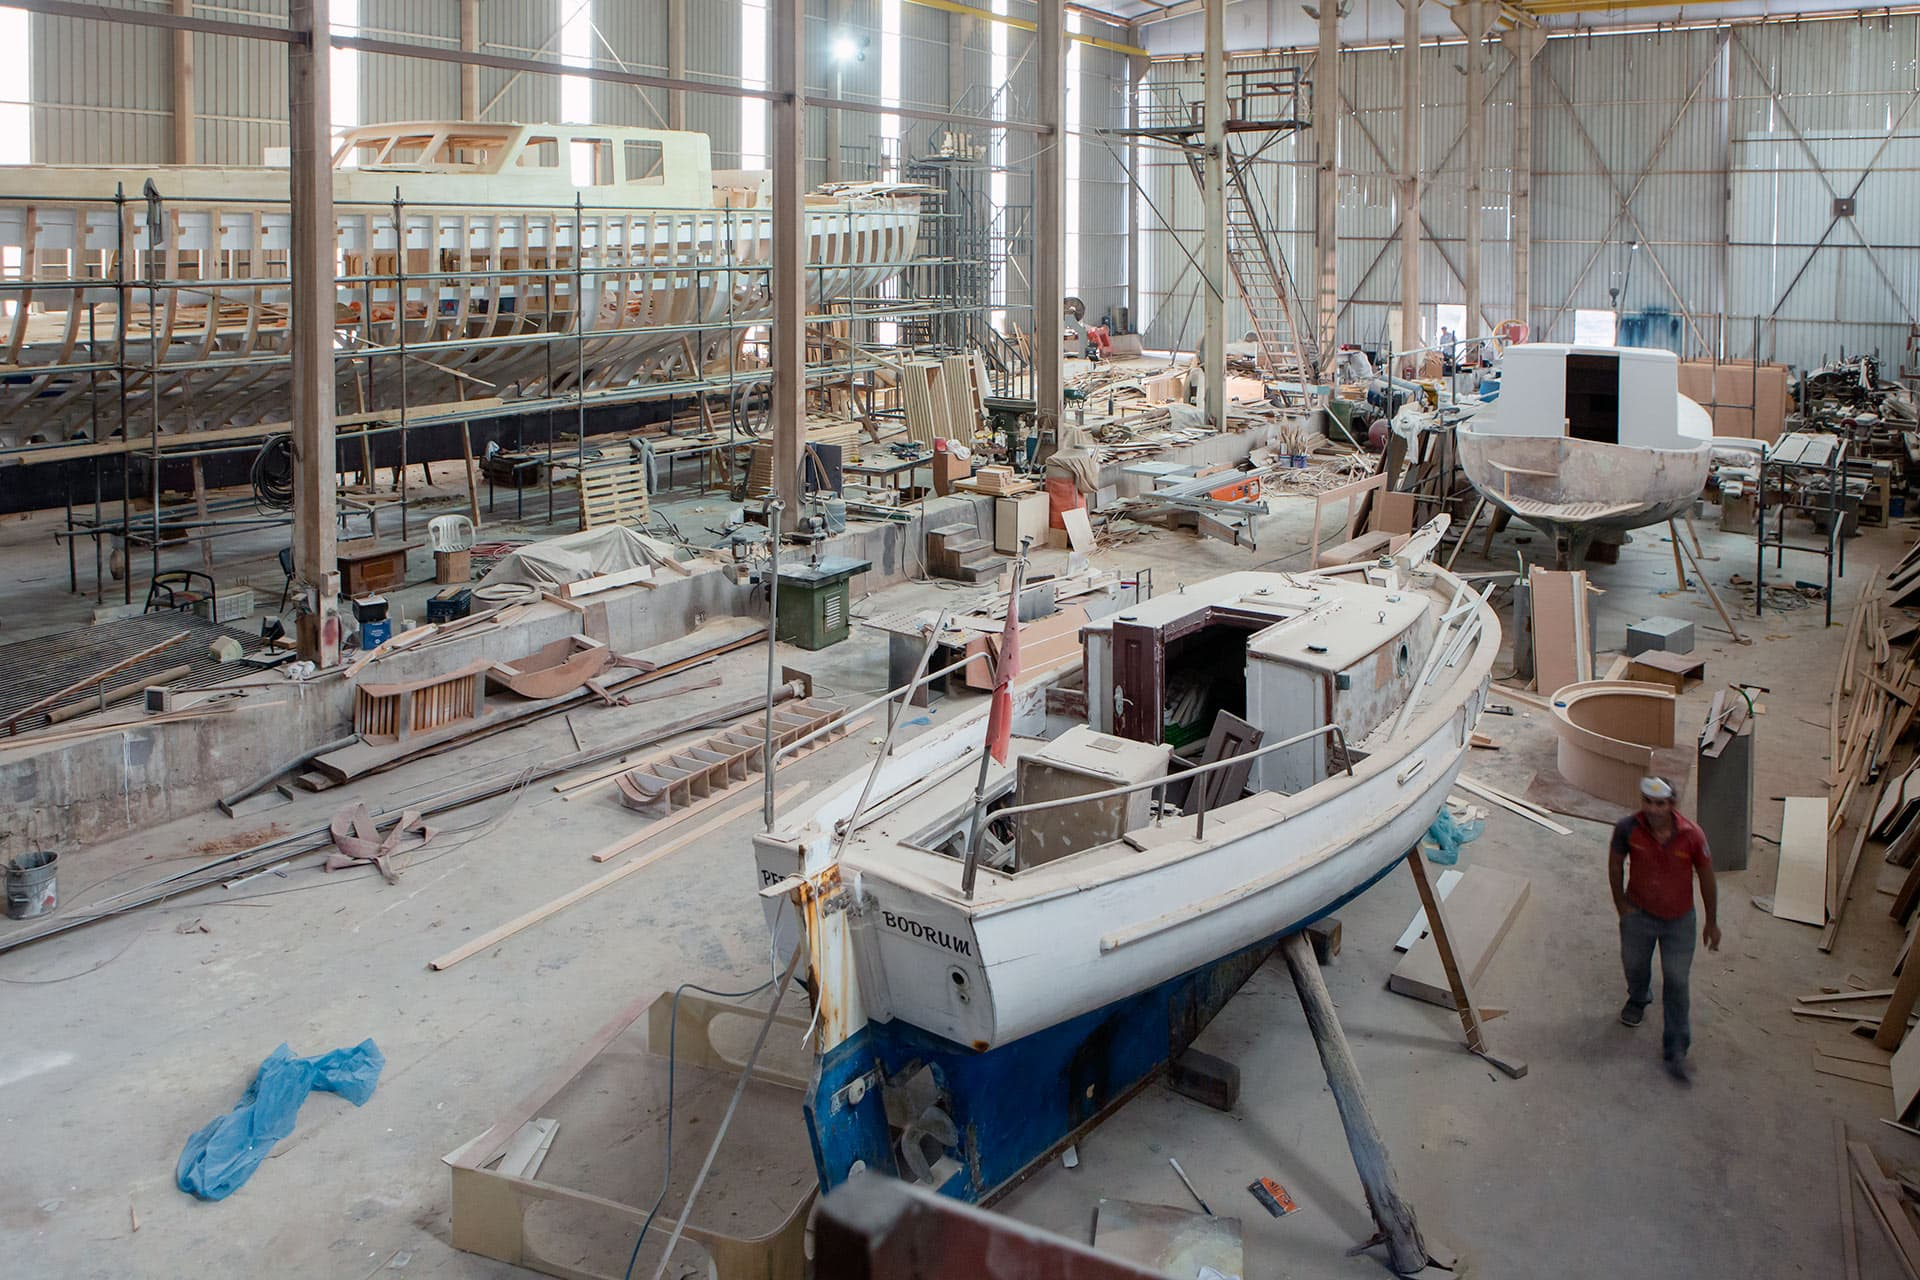 Wide view of the interior of a boatyard hangar with 3 boats visibly under construction